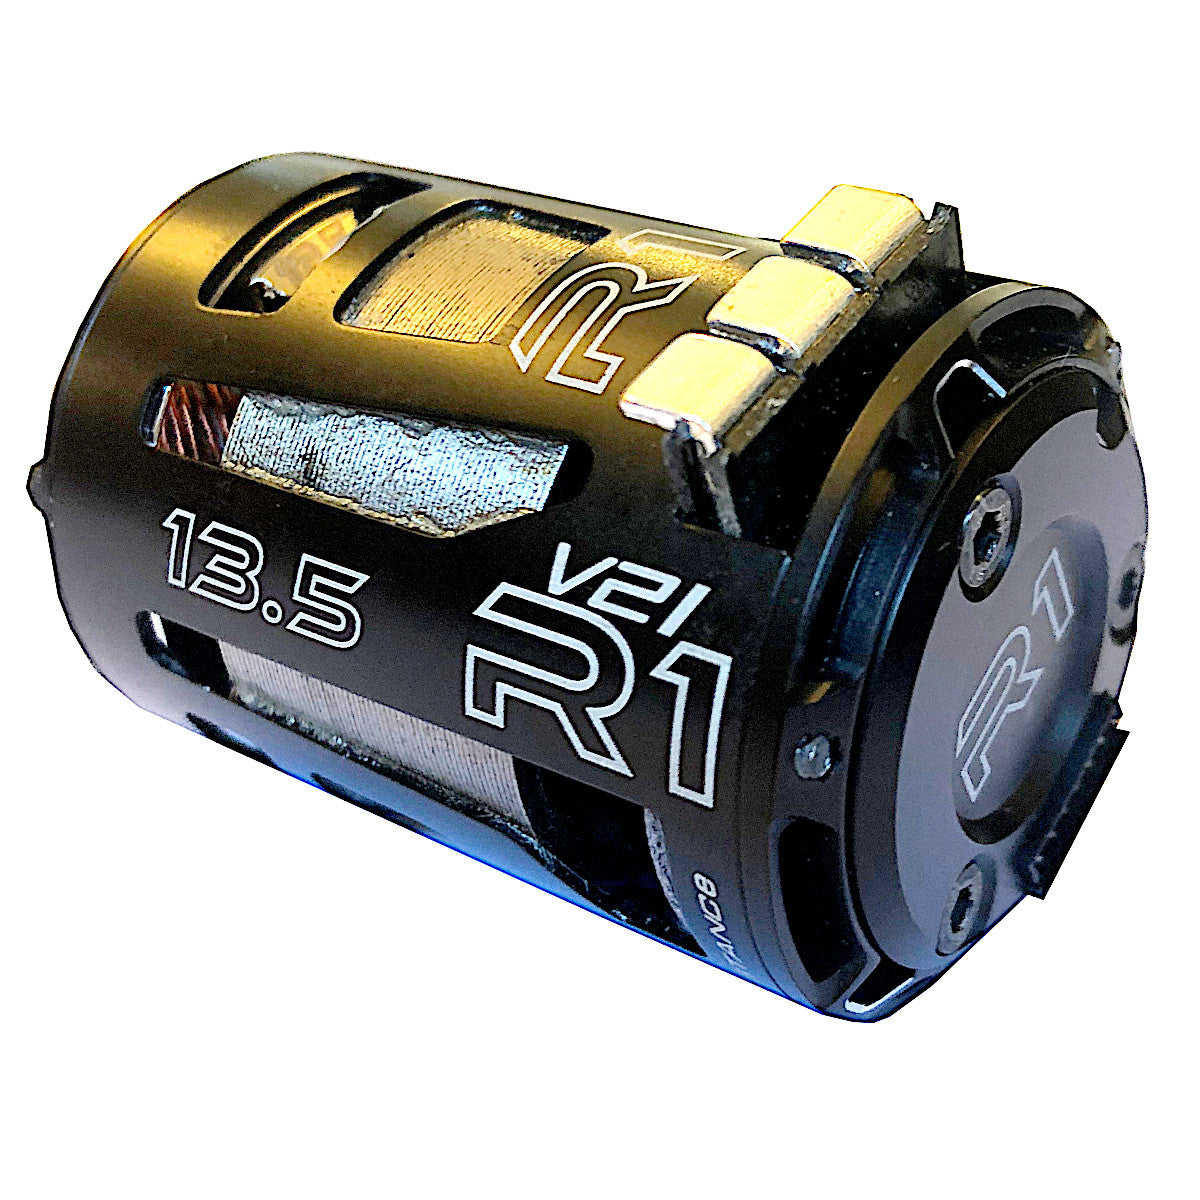 R1 Wurks 13.5T V21 RC Brushless Motor